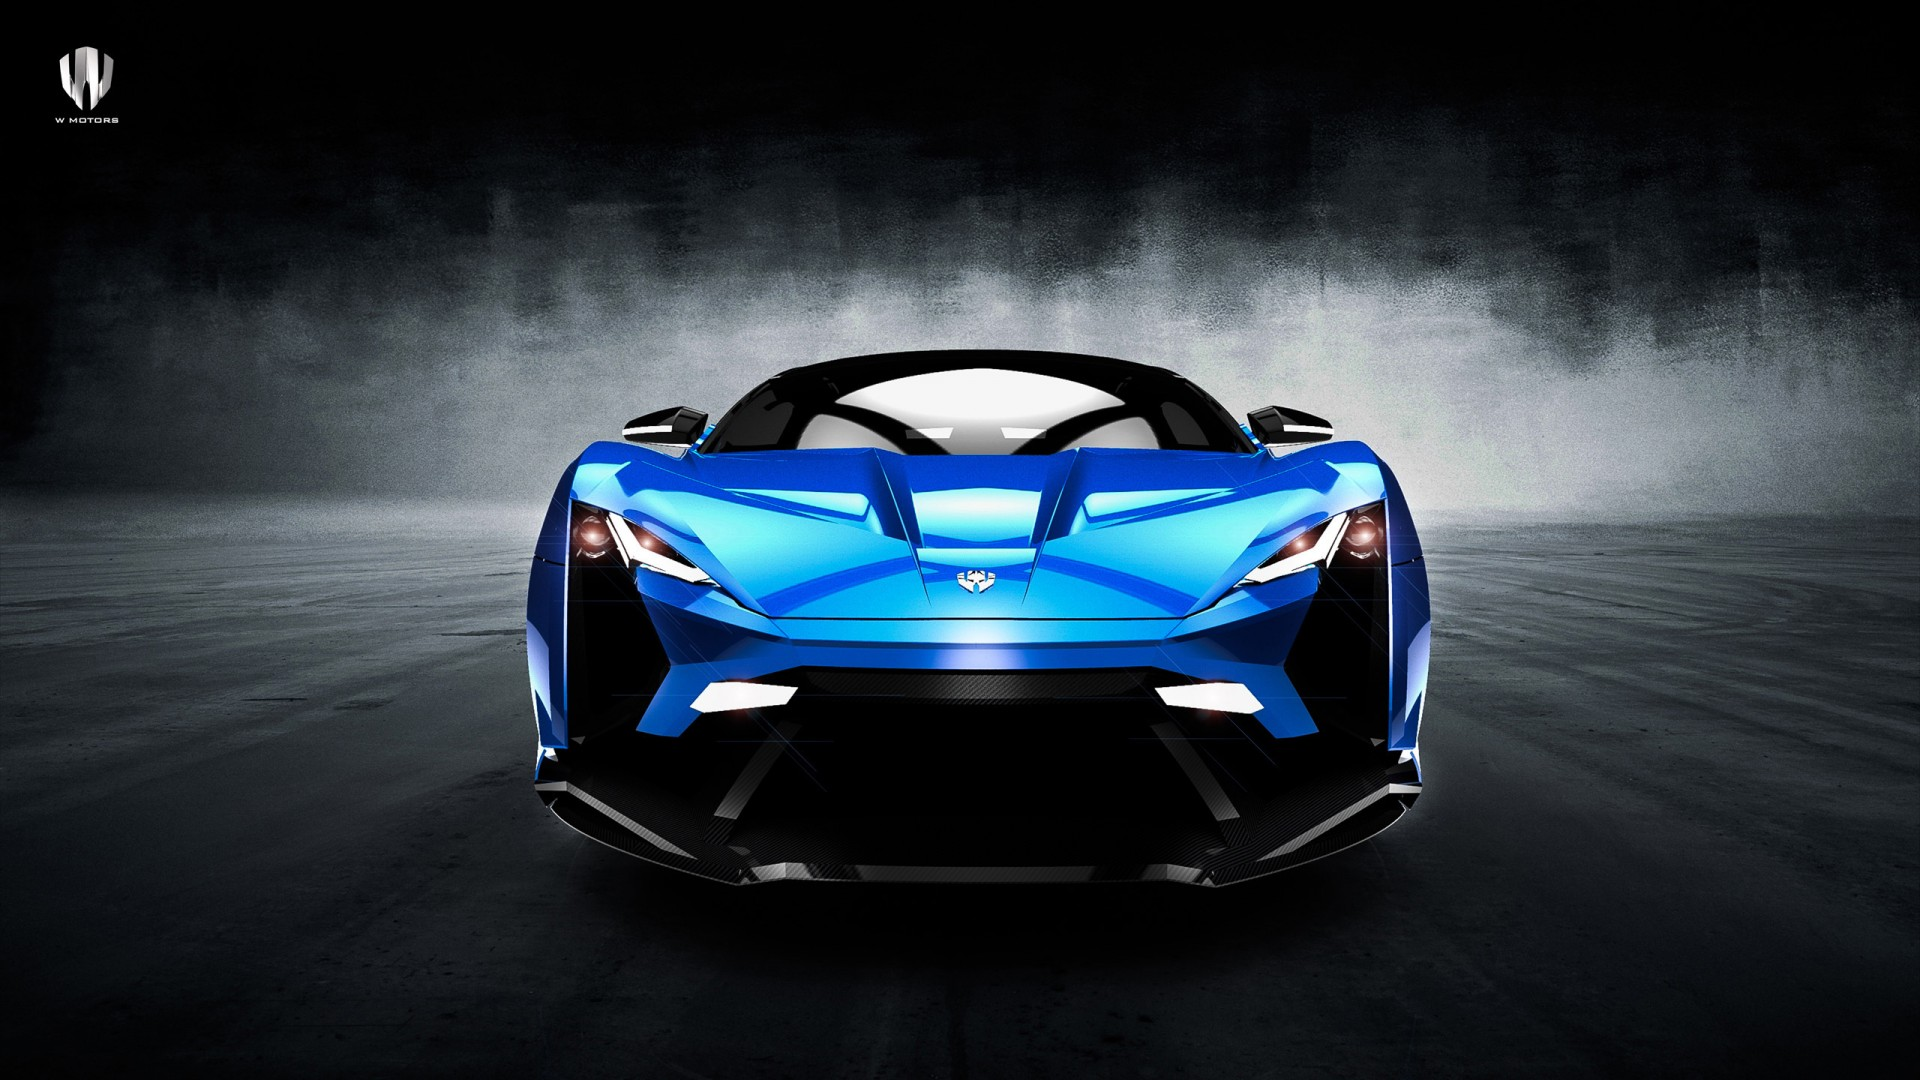 2015 W Motors Lykan SuperSport Wallpaper